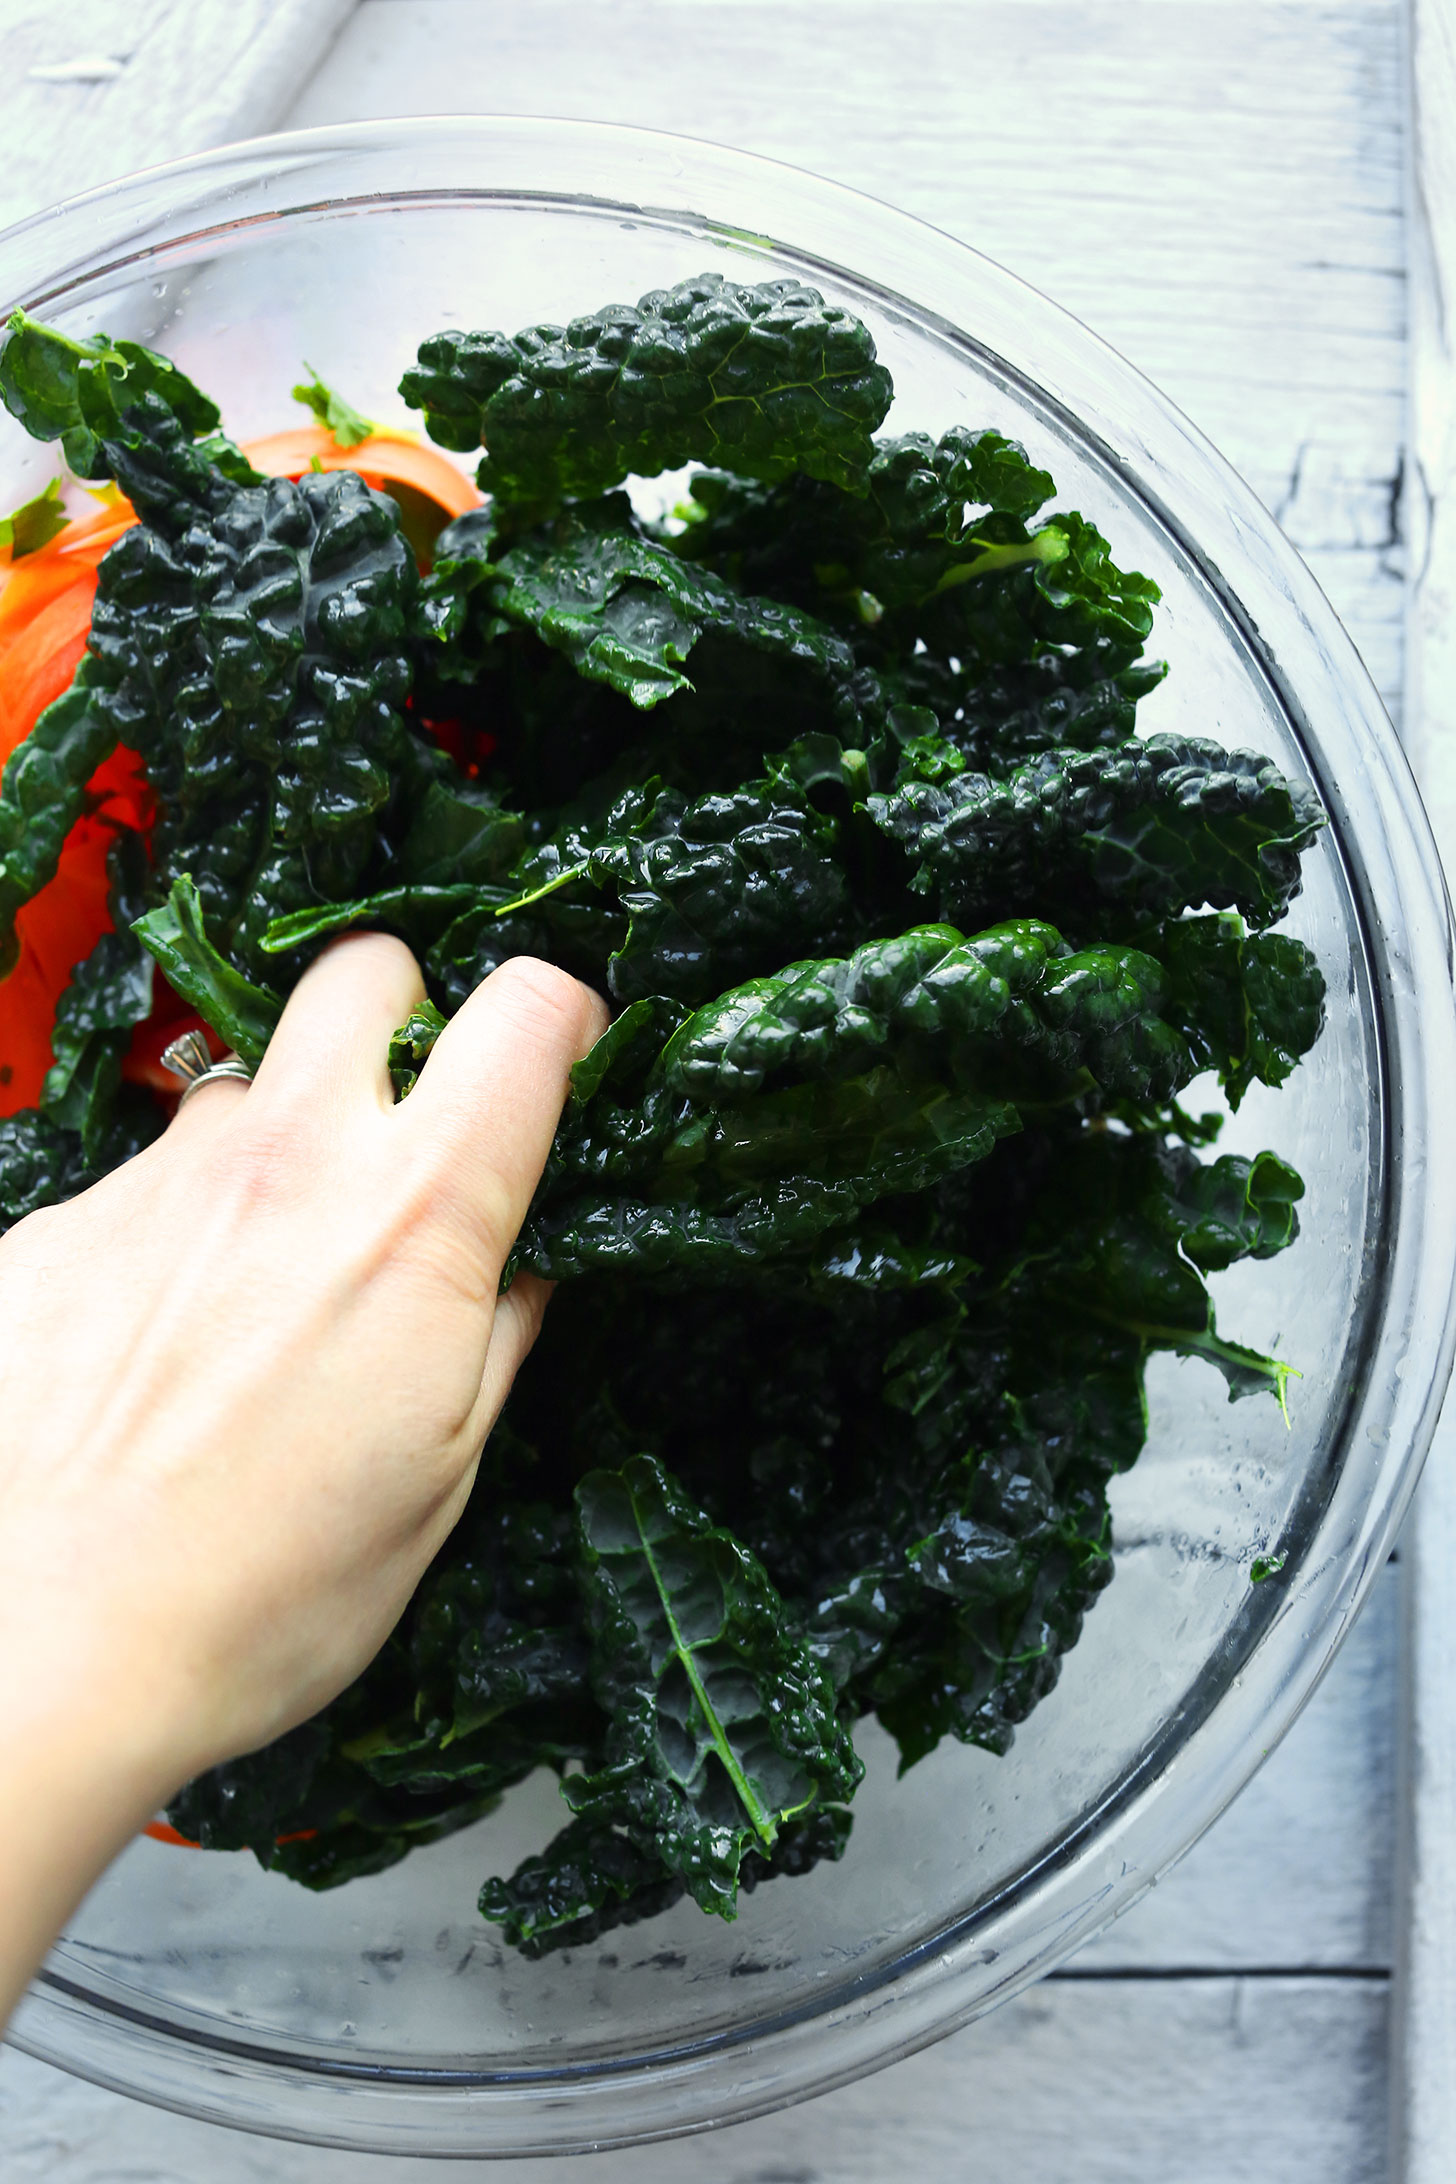 Adding kale leaves to a bowl for Gingery Thai Kale Salad made with tons of veggies